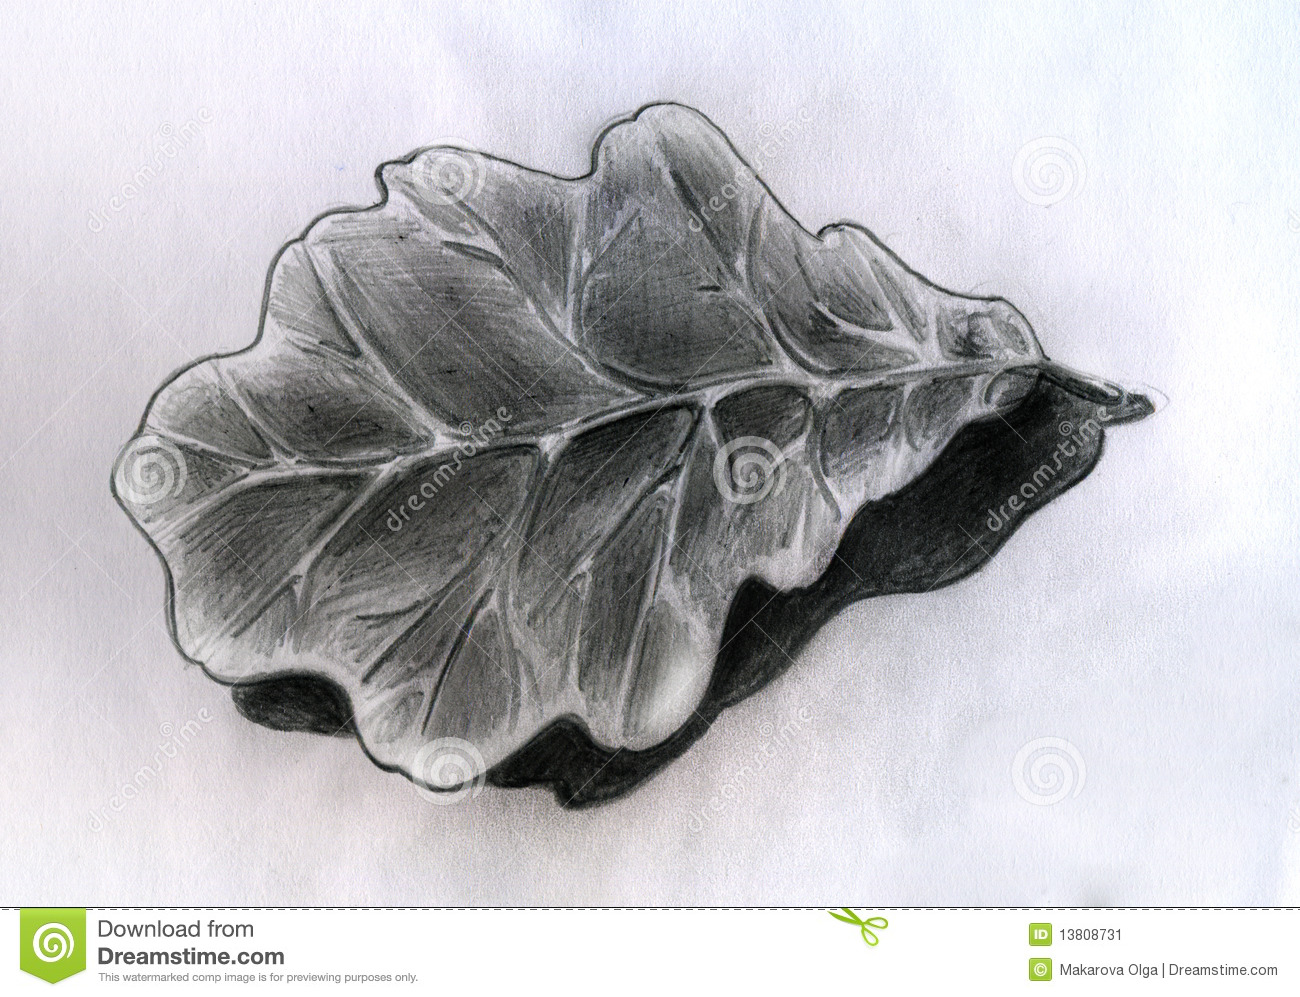 Oak leaf sketch stock illustration